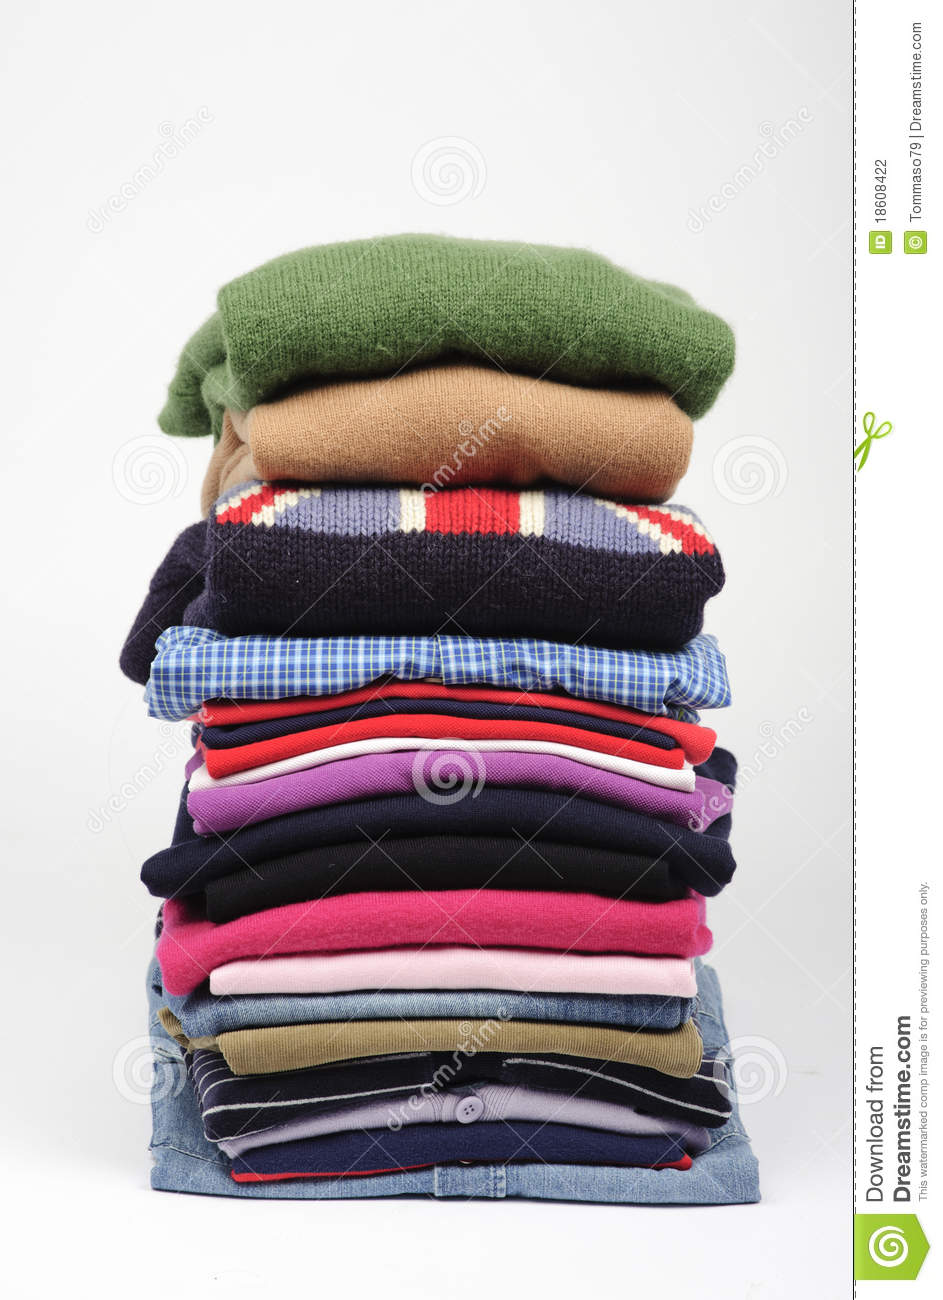 Pile Of Clothes Stock Photography - Image: 18608422